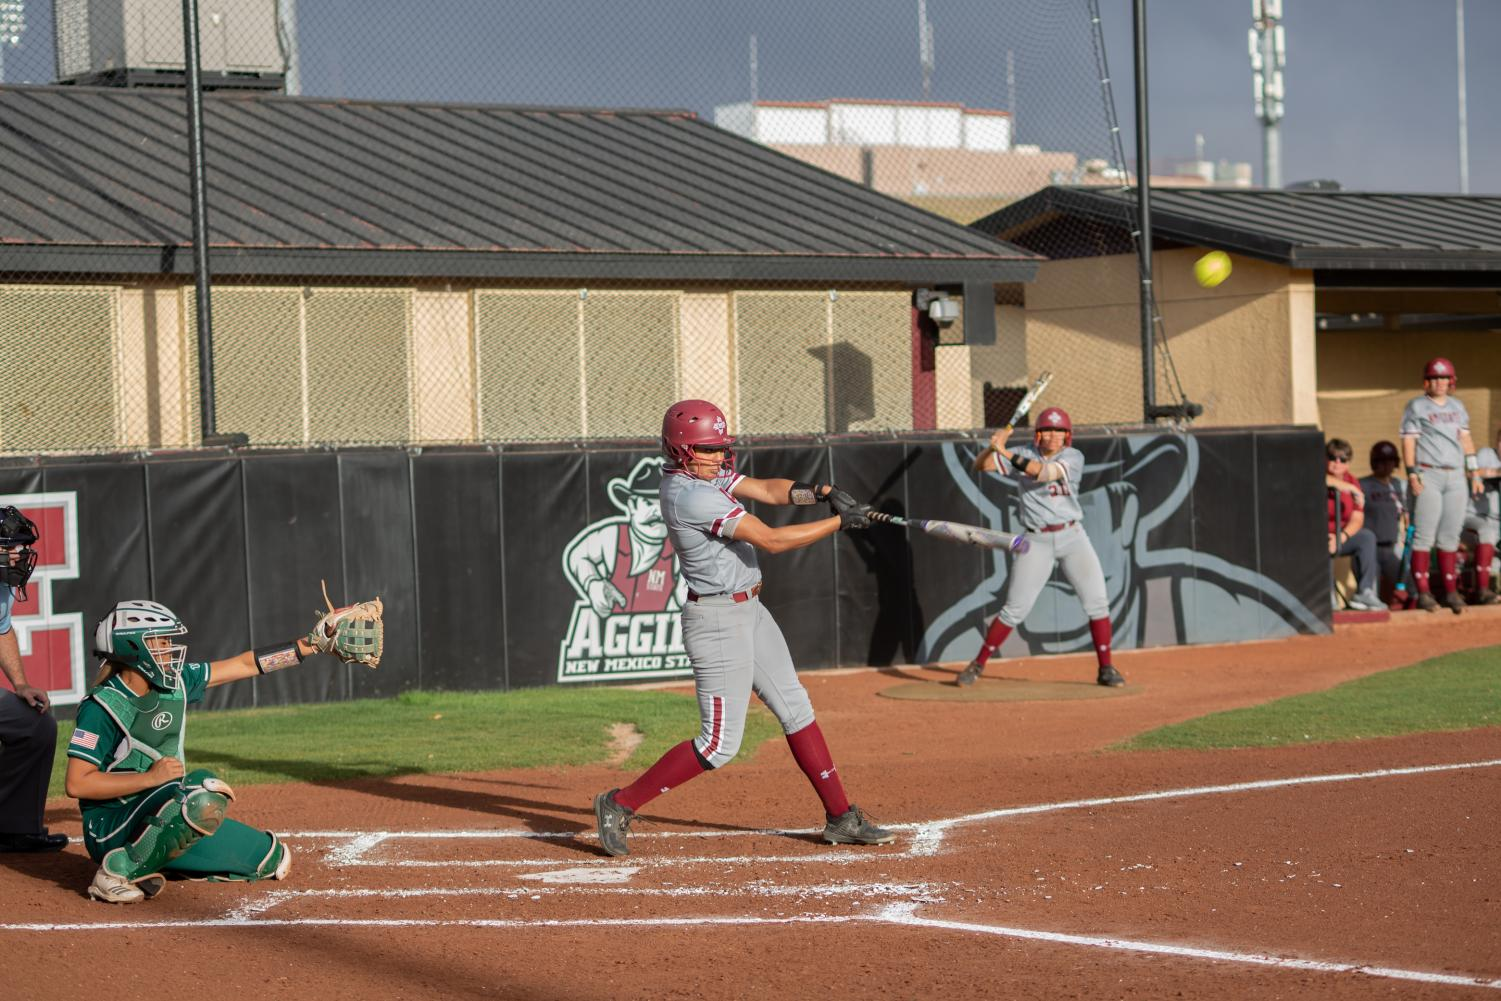 With three weeks left in the regular season, head coach Kathy Rodolph and the Aggies are depending on the contributions of what has been an excellent group of freshmen to propel the program to its fifth consecutive WAC Championship.